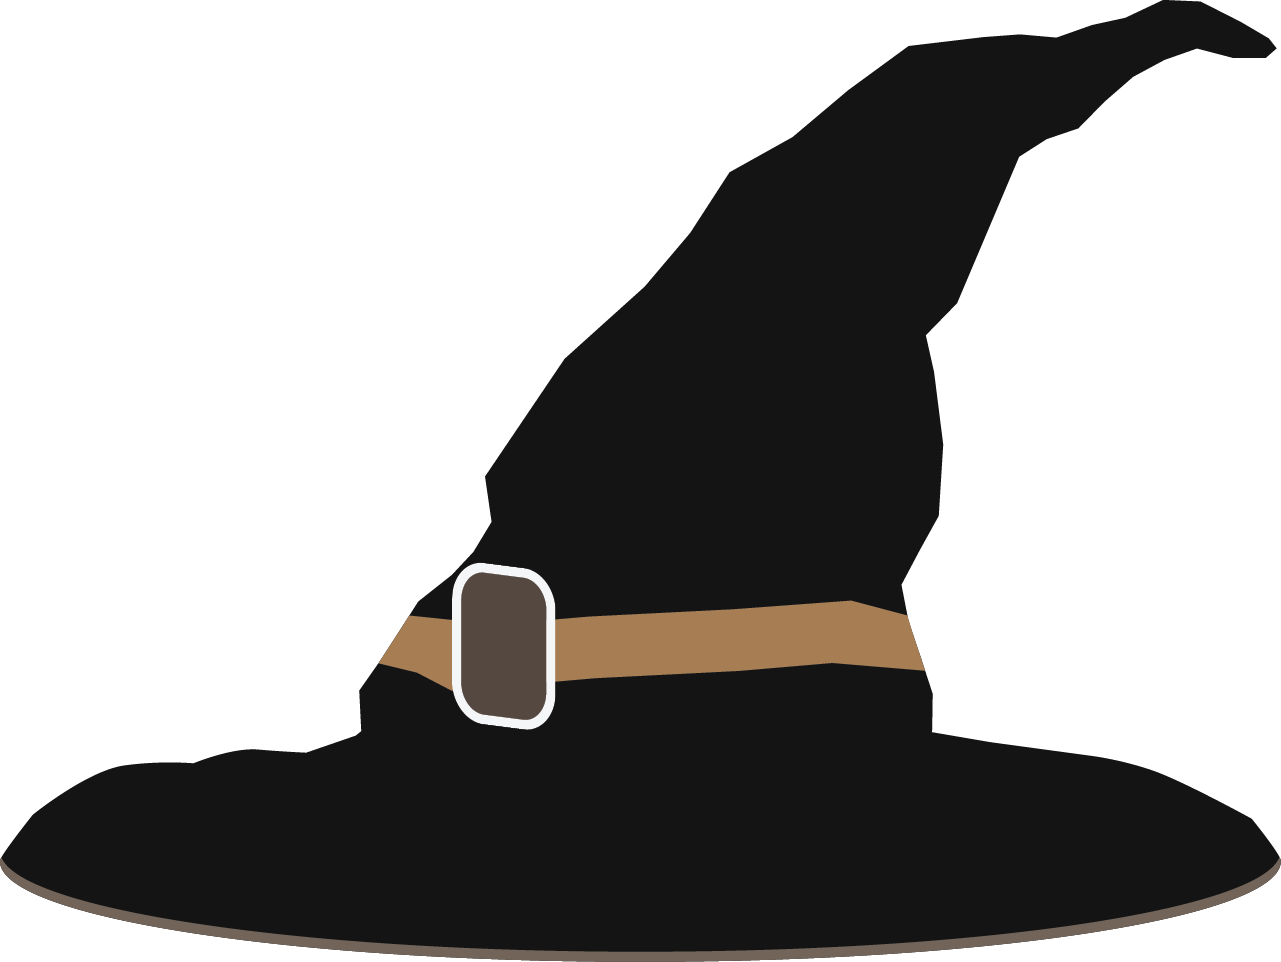 Cute witch hat clipart.